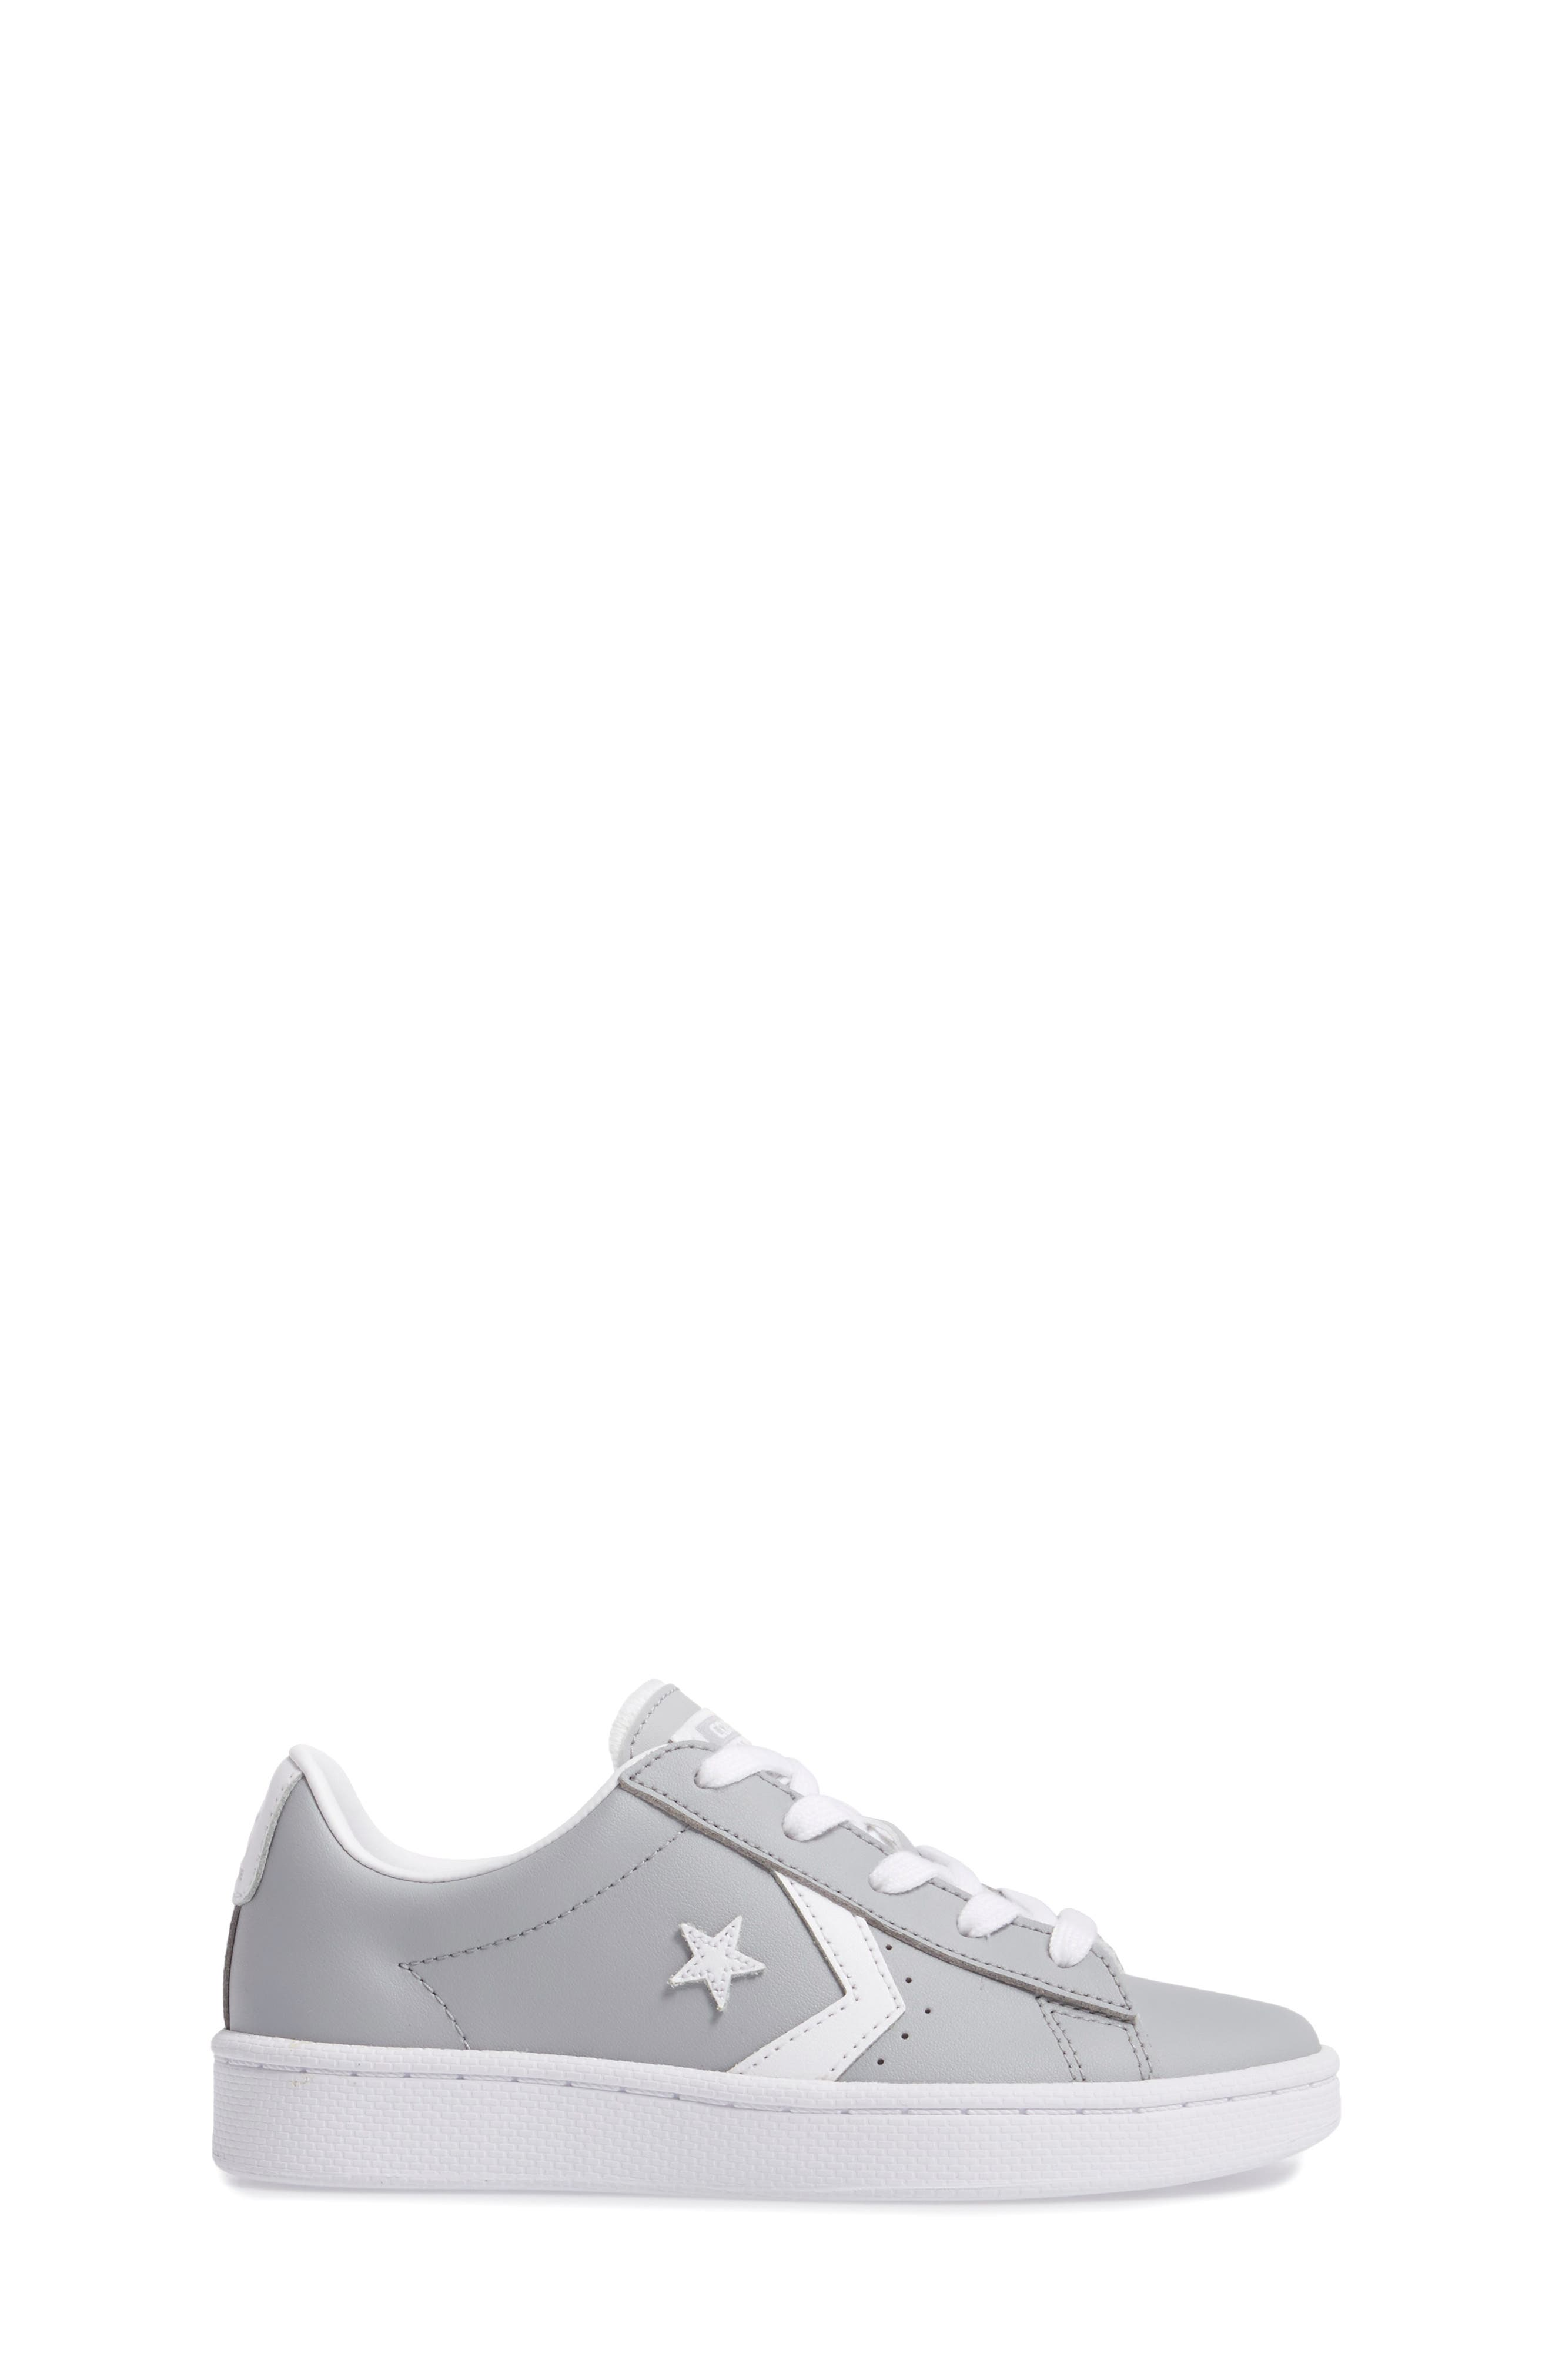 All Star<sup>®</sup> Pro Leather Low Top Sneaker,                             Alternate thumbnail 3, color,                             097